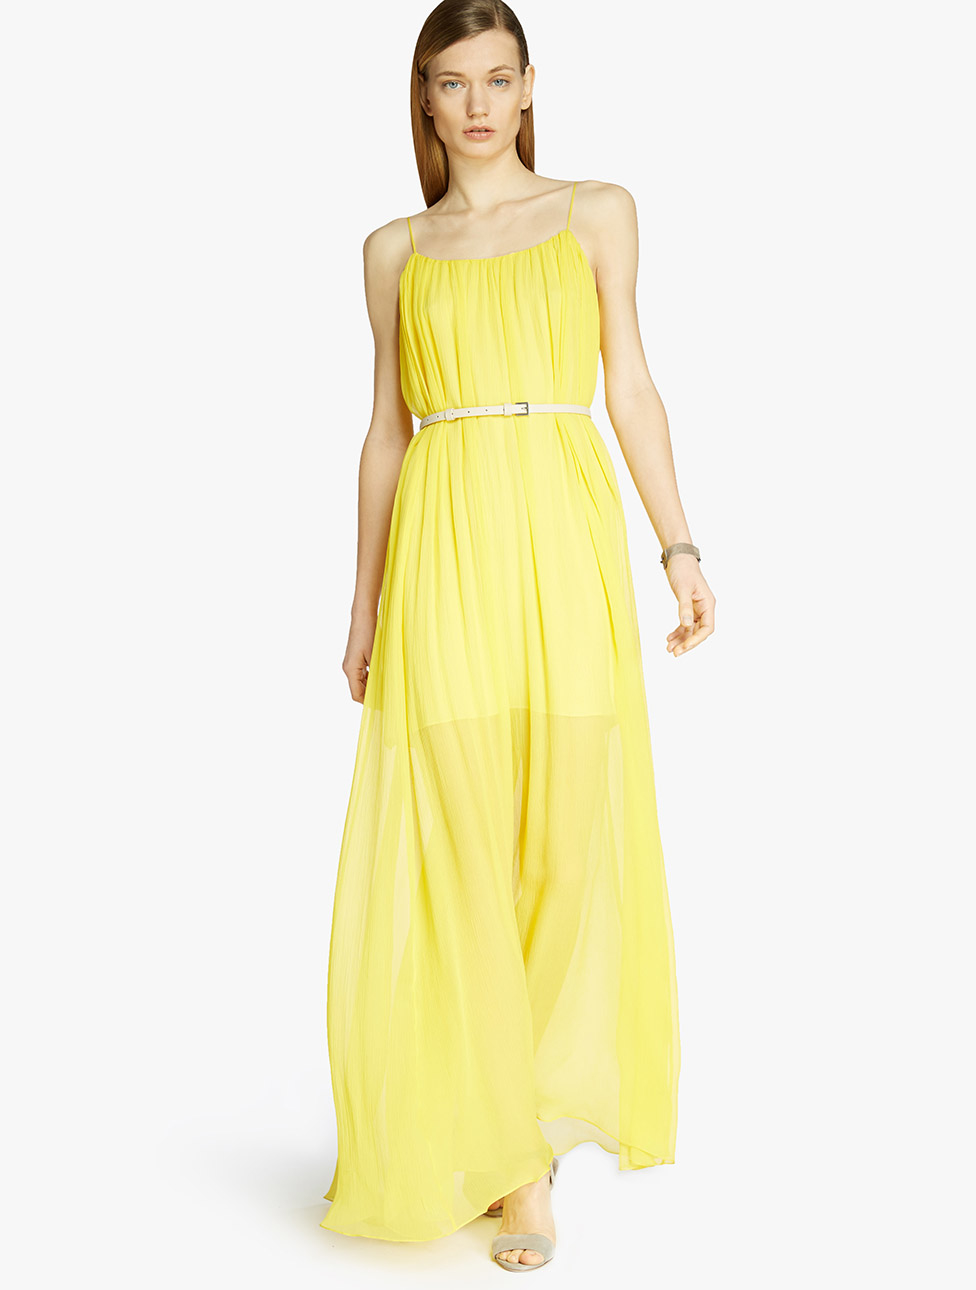 Lemon Yellow Chiffon Dress